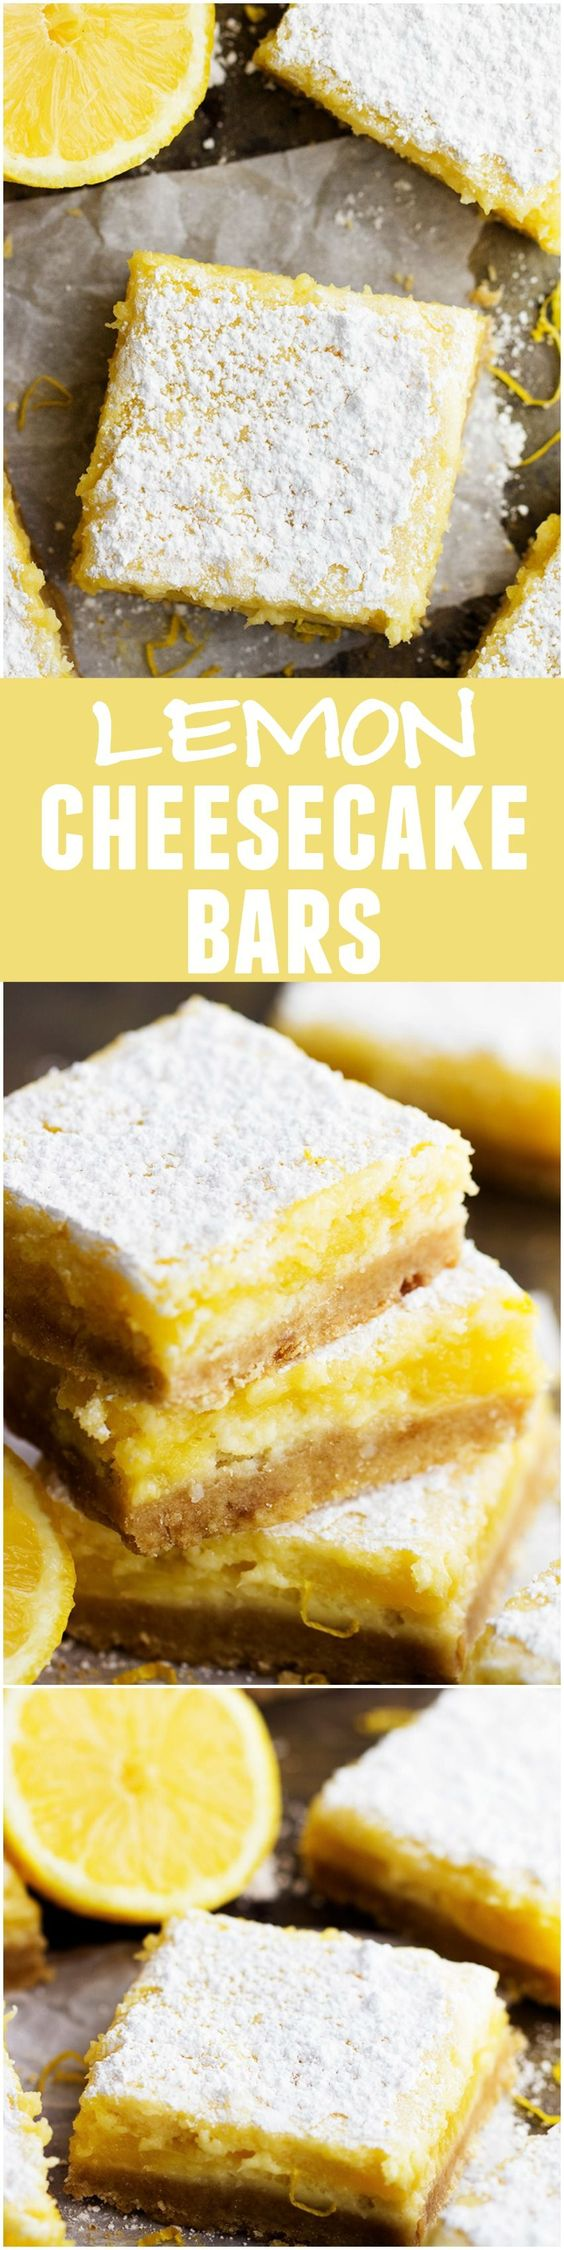 Lemon Cheesecake Bars Recipe via The Recipe Critic - These are the absolute BEST lemon cheesecake bars! They will be raved about wherever they go!